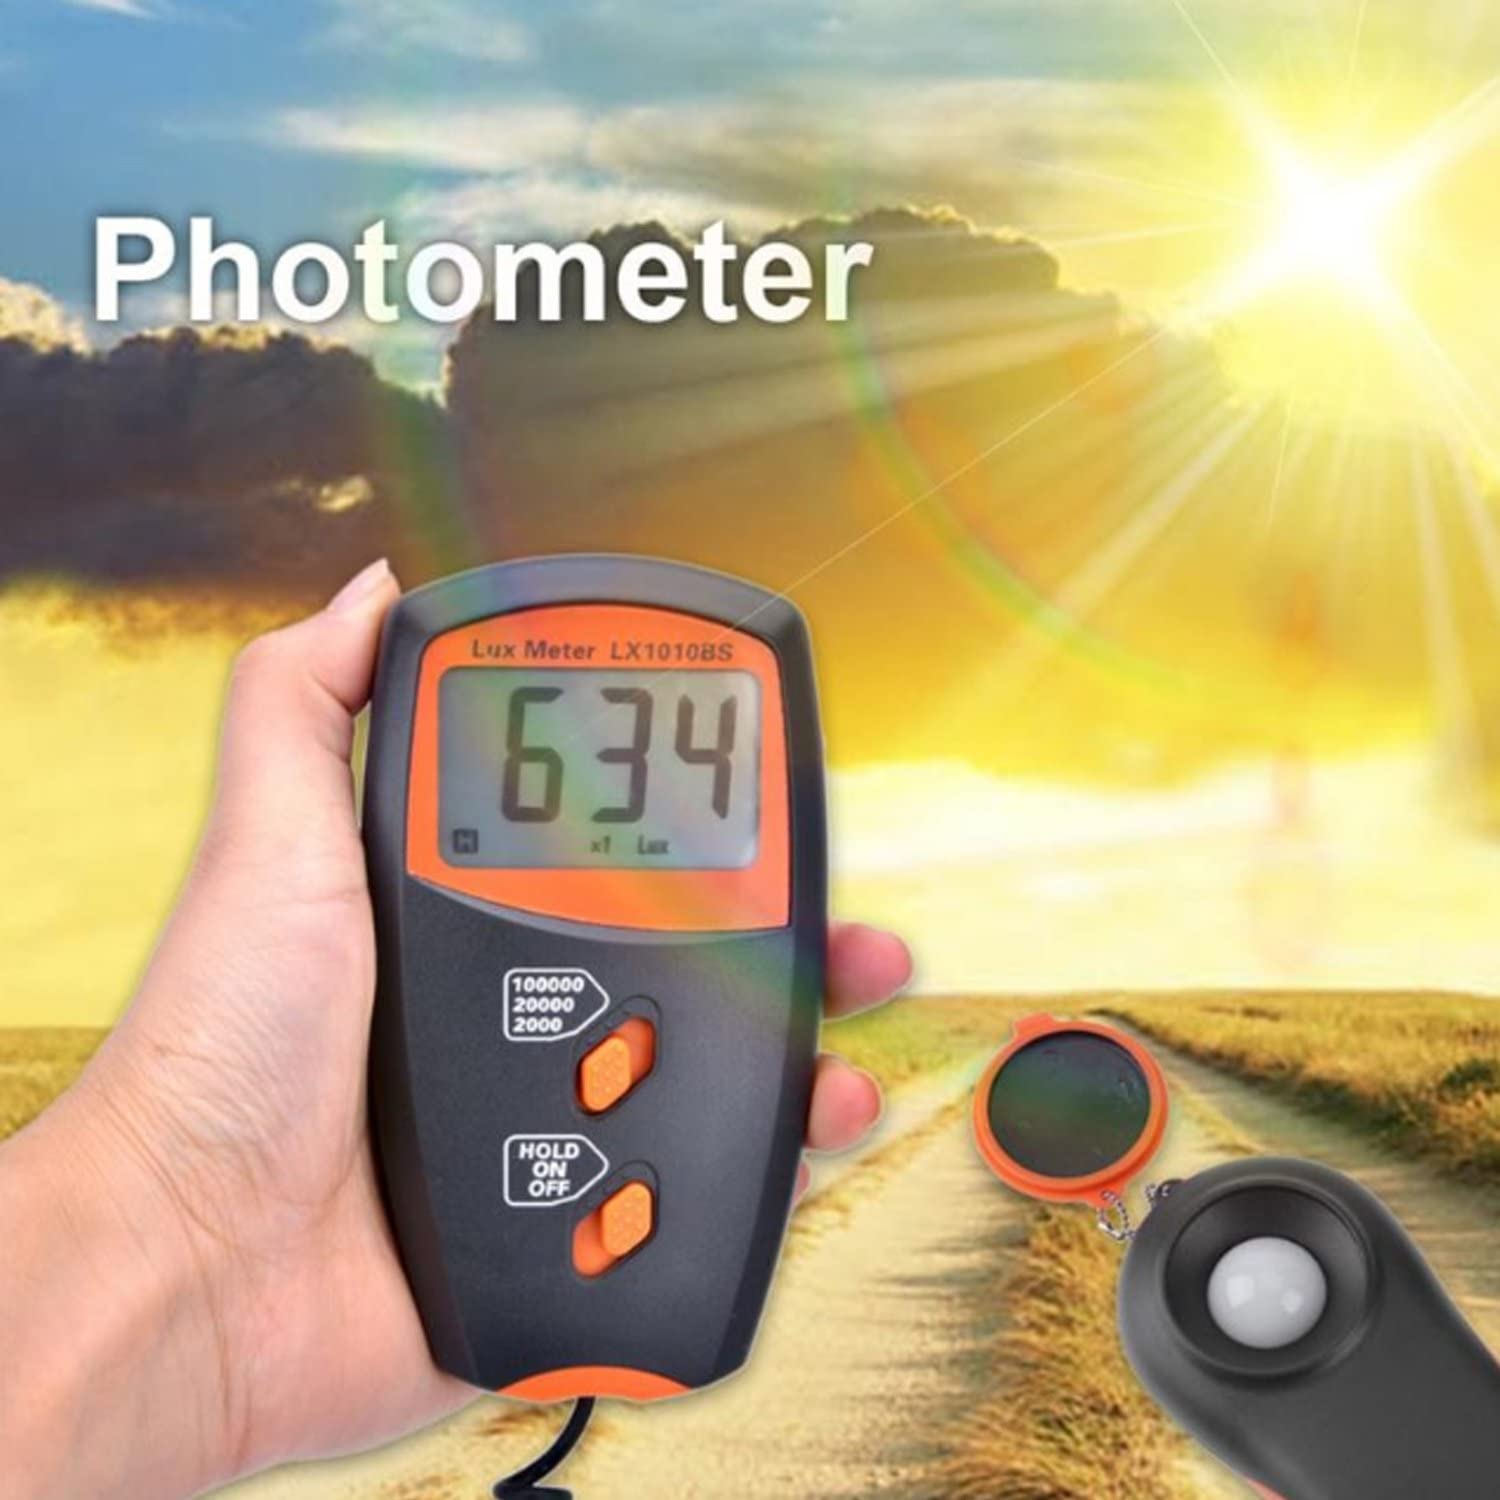 Shengjuanfeng Light Meter Handheld Digital lux Meter LX1010BS Light Measurement Range:1~100,000Lux